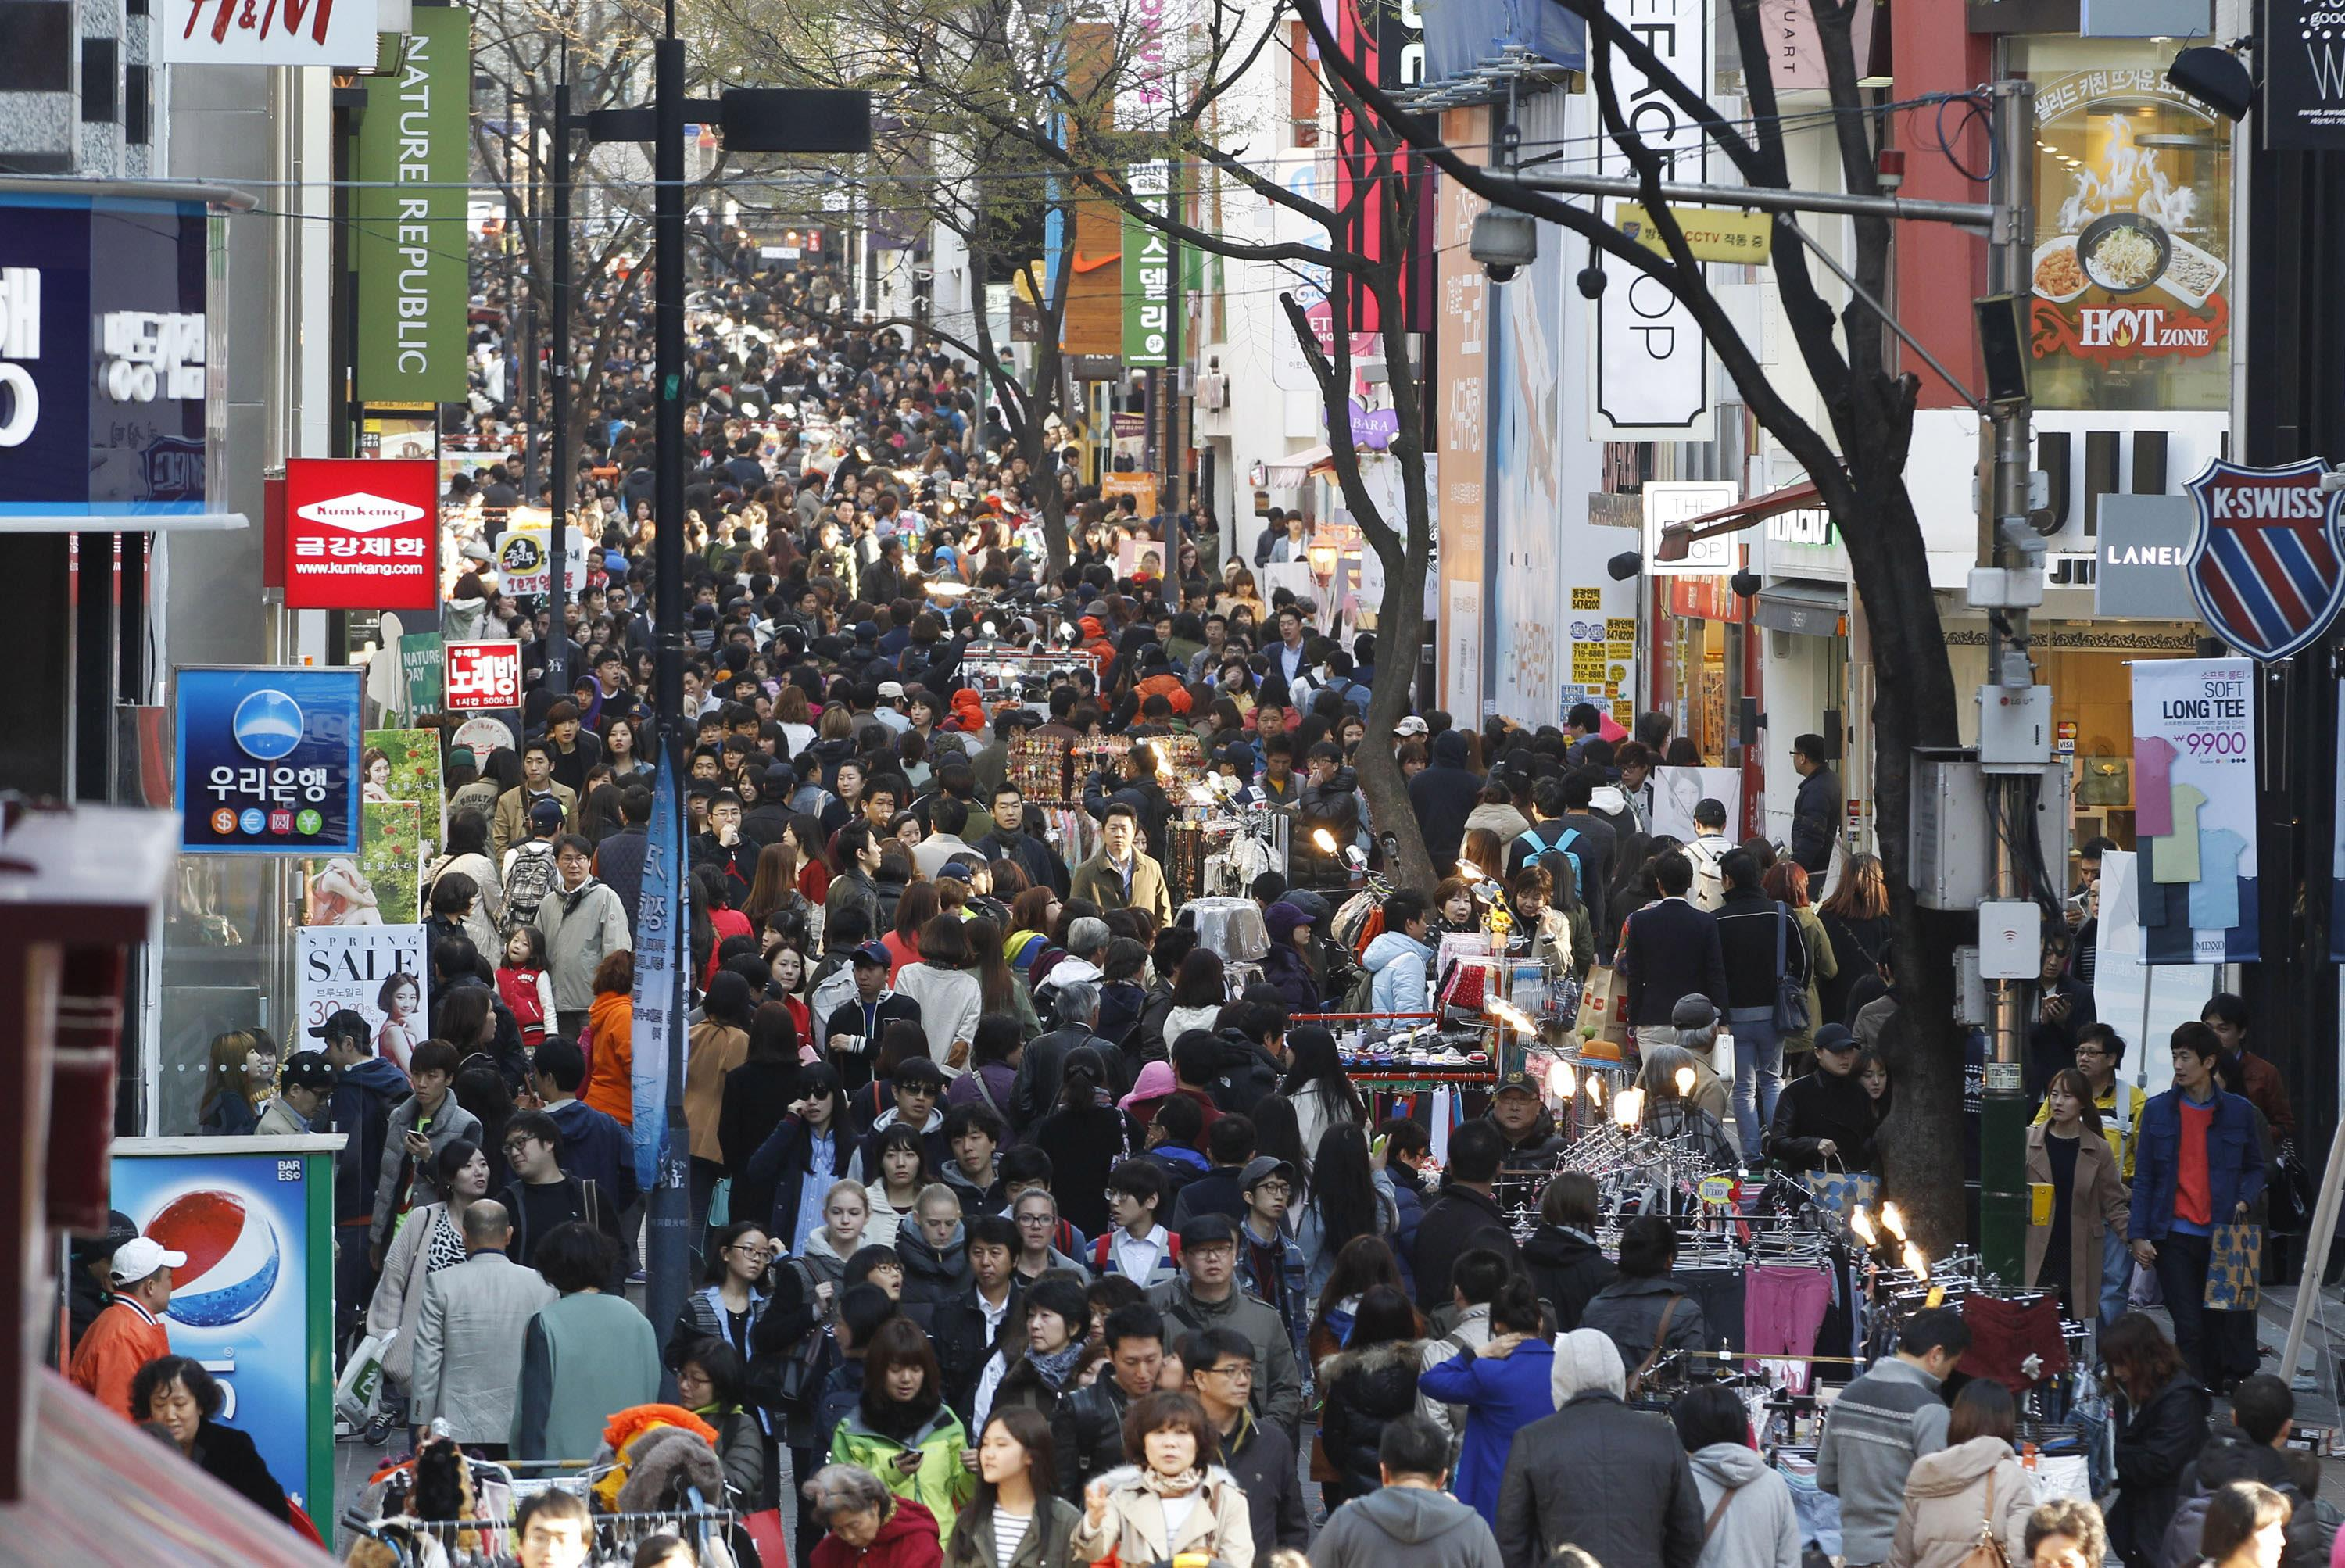 Image: People crowd at Myeongdong, a main shopping street, for weekend shopping.